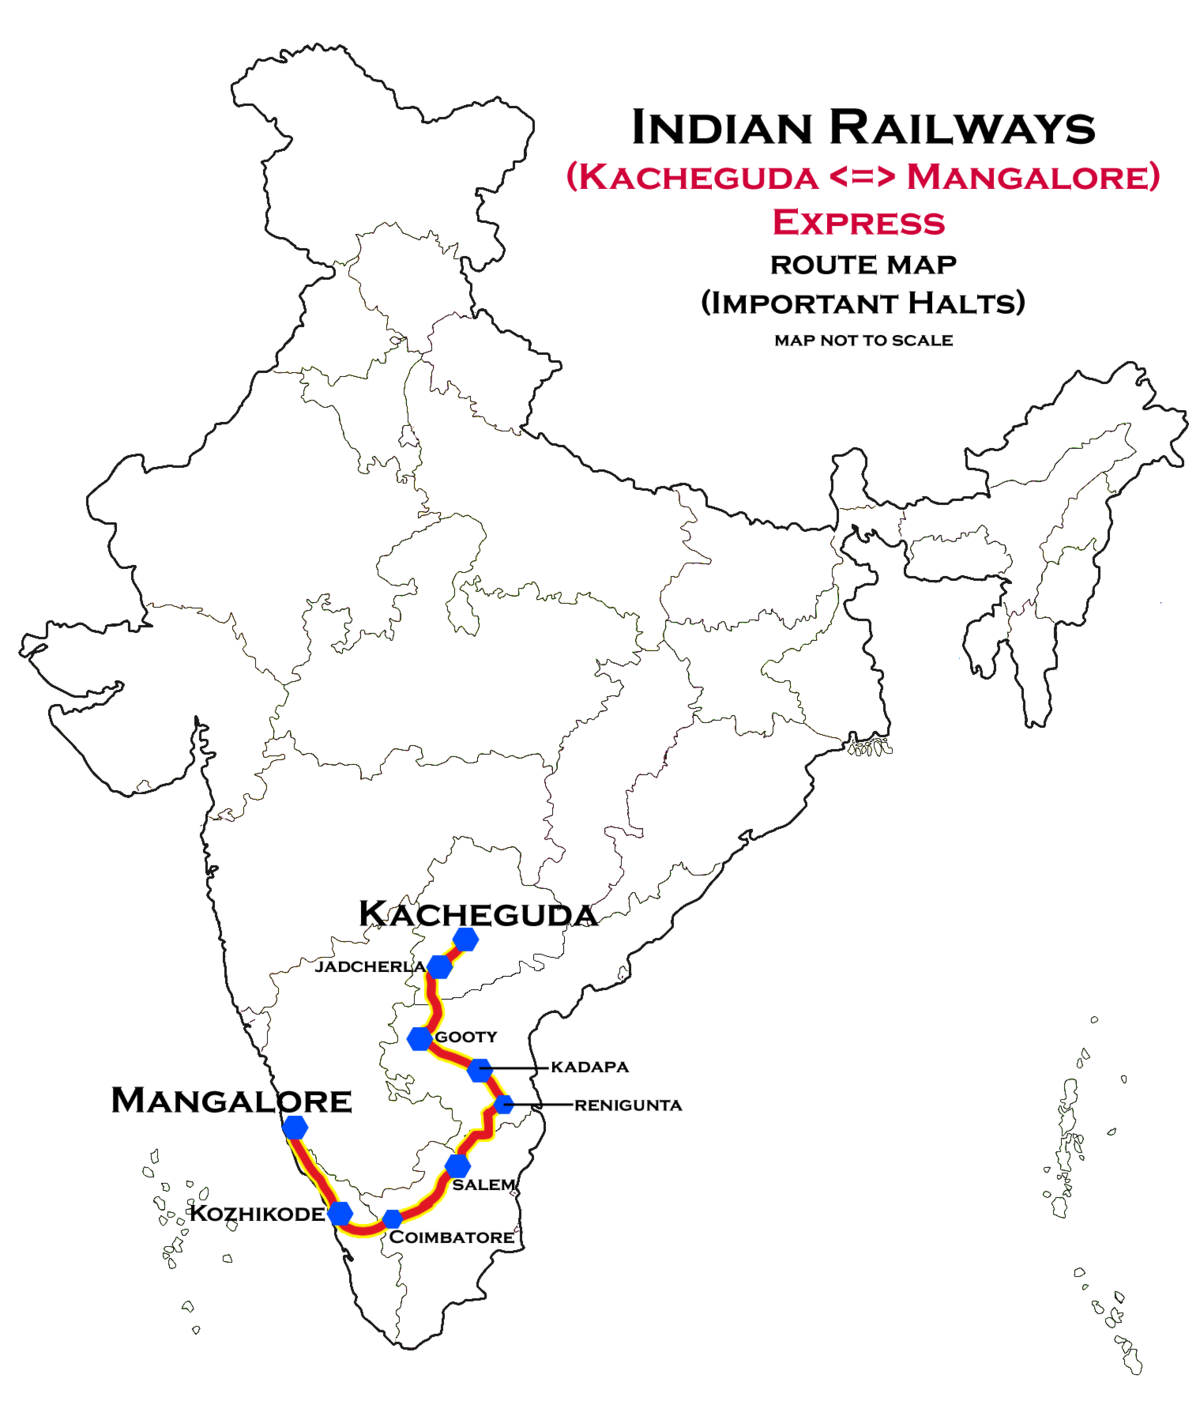 indian railway food, indian railways logo, indian railway network, indian railway enquiry, auto train route map, indian rail route, us train routes map, indian railway fare table, indian railway ticket availability, pakistan railway track map, indian railways seat availability, transcontinental railroad route map, indian railway schedule, european train route map, indian railway reservation, india railway map, indian railway timetable, indian railway stations, mt. shasta route map, ferdinand magellan's route map, on indian railway route map